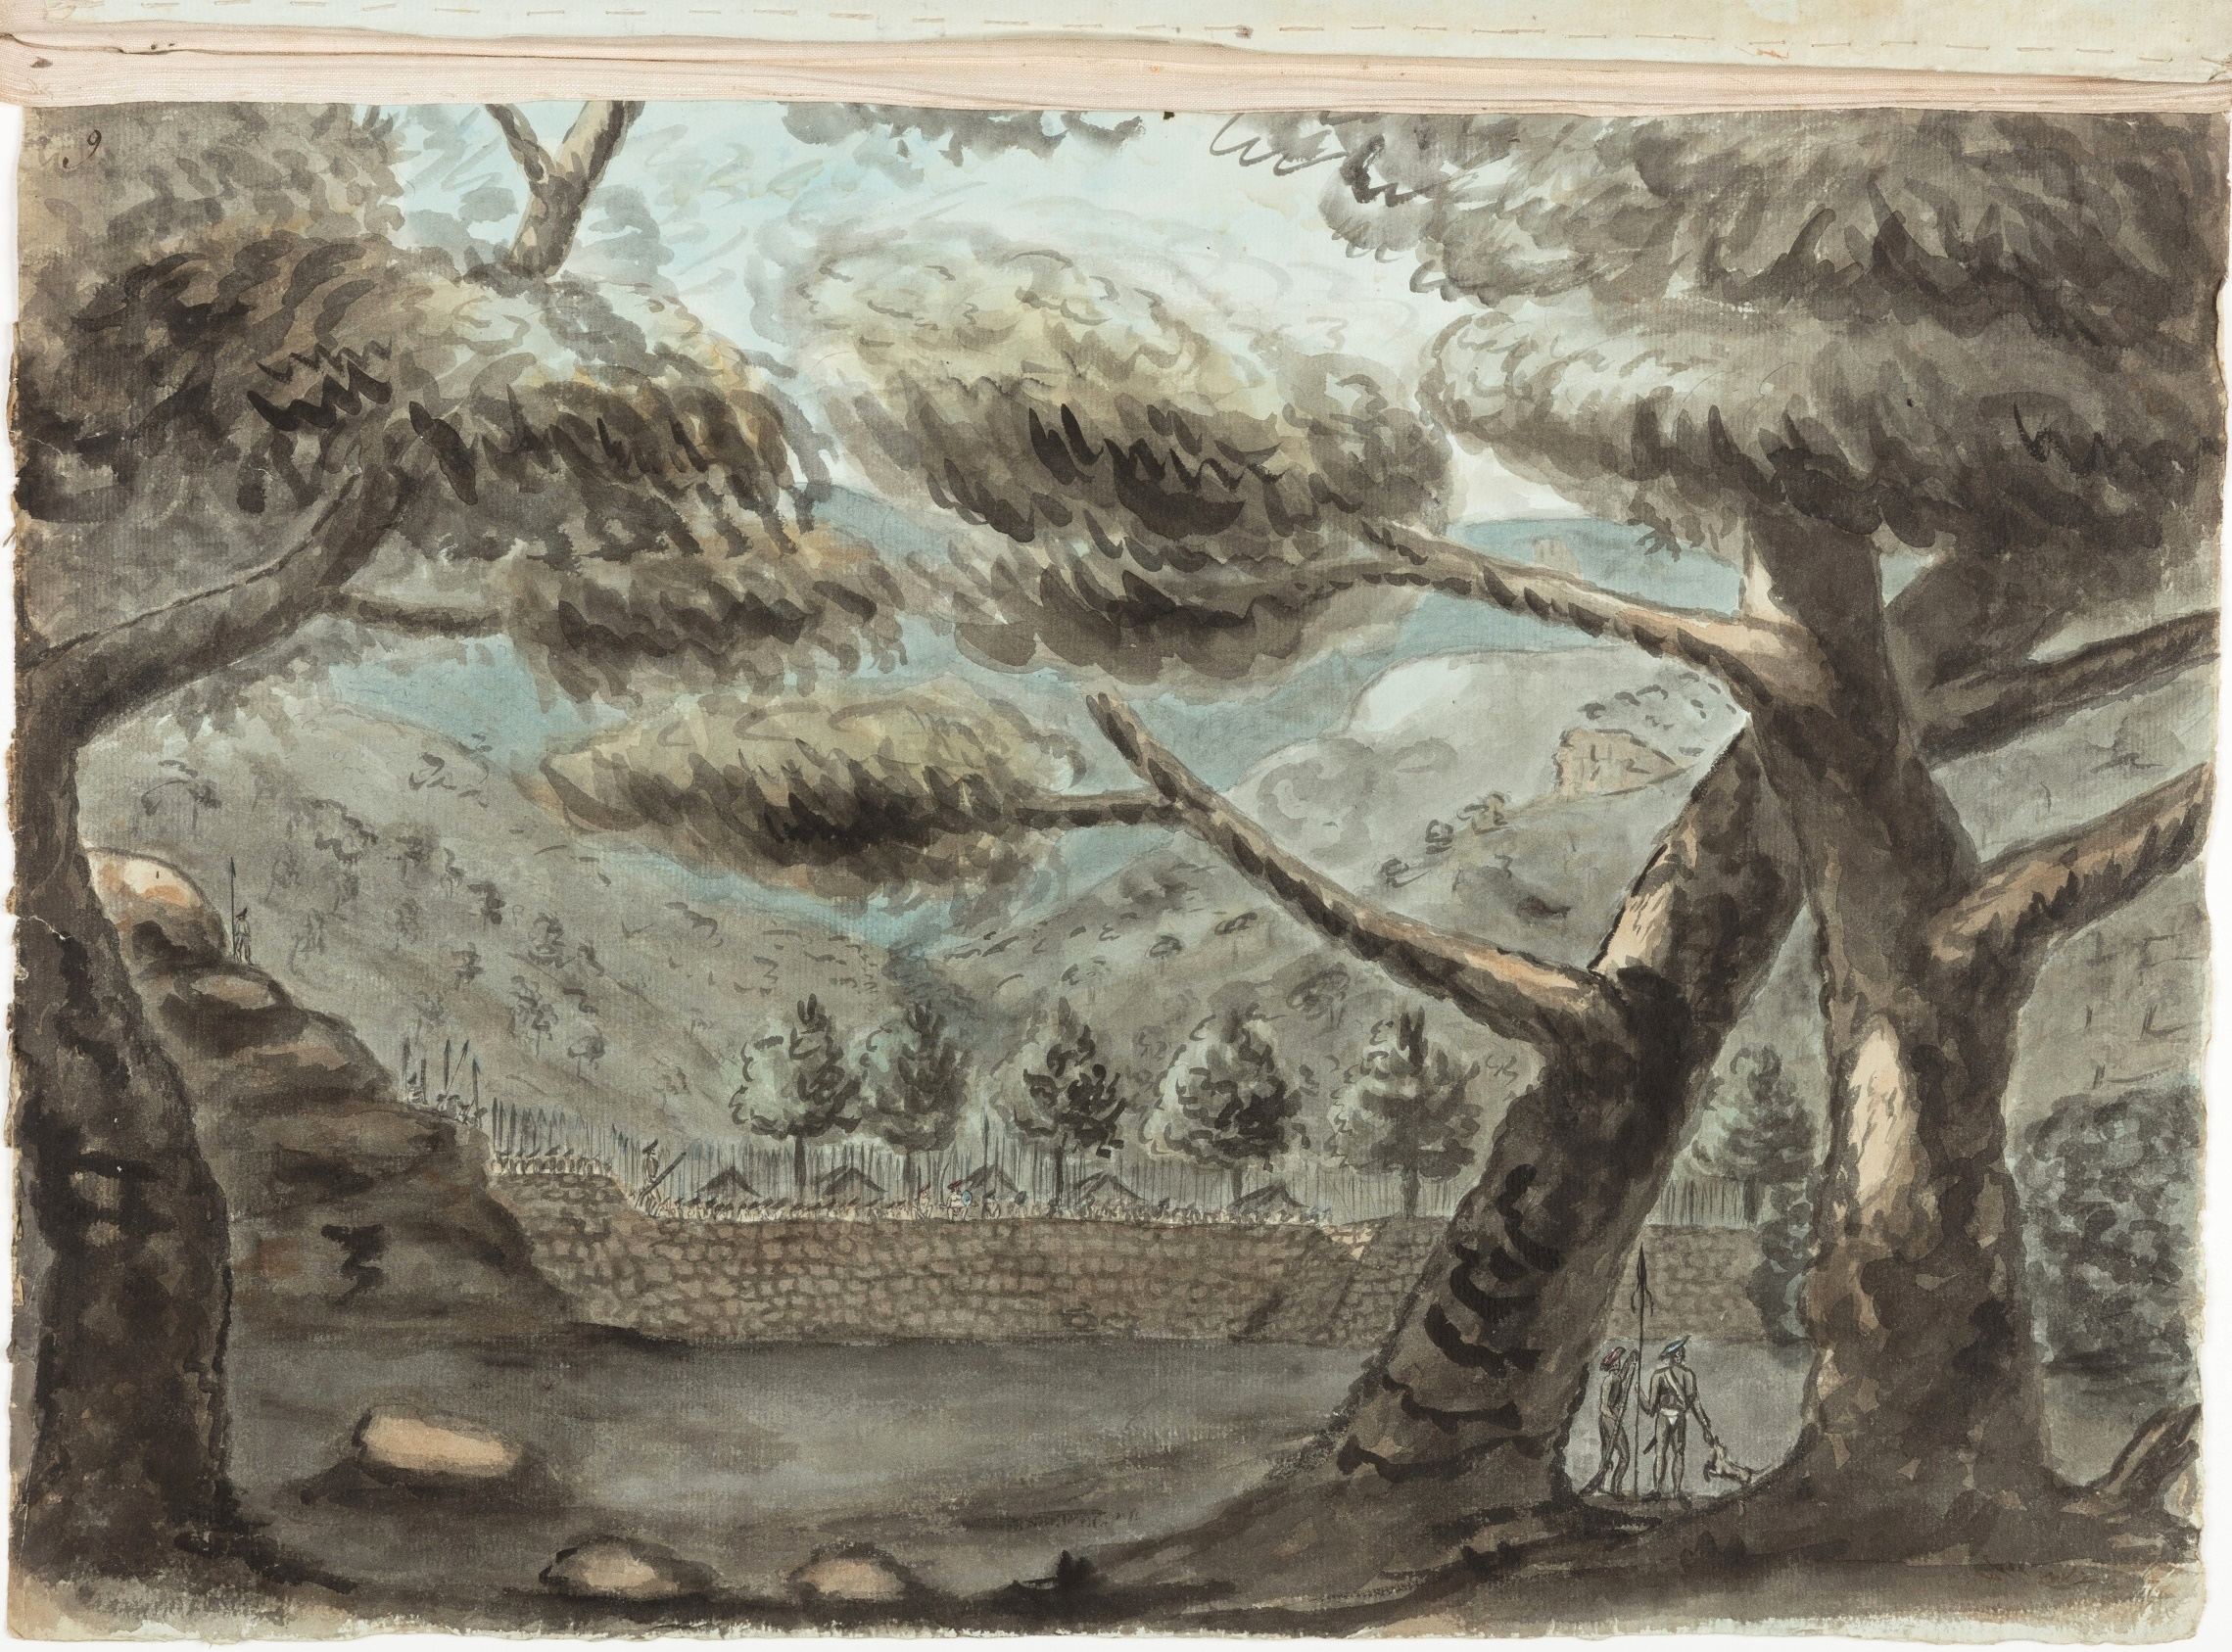 Barrier in Shivighurry Pollum defended by the Rajah against Col Maxwell's detachment / Thomas Marriott